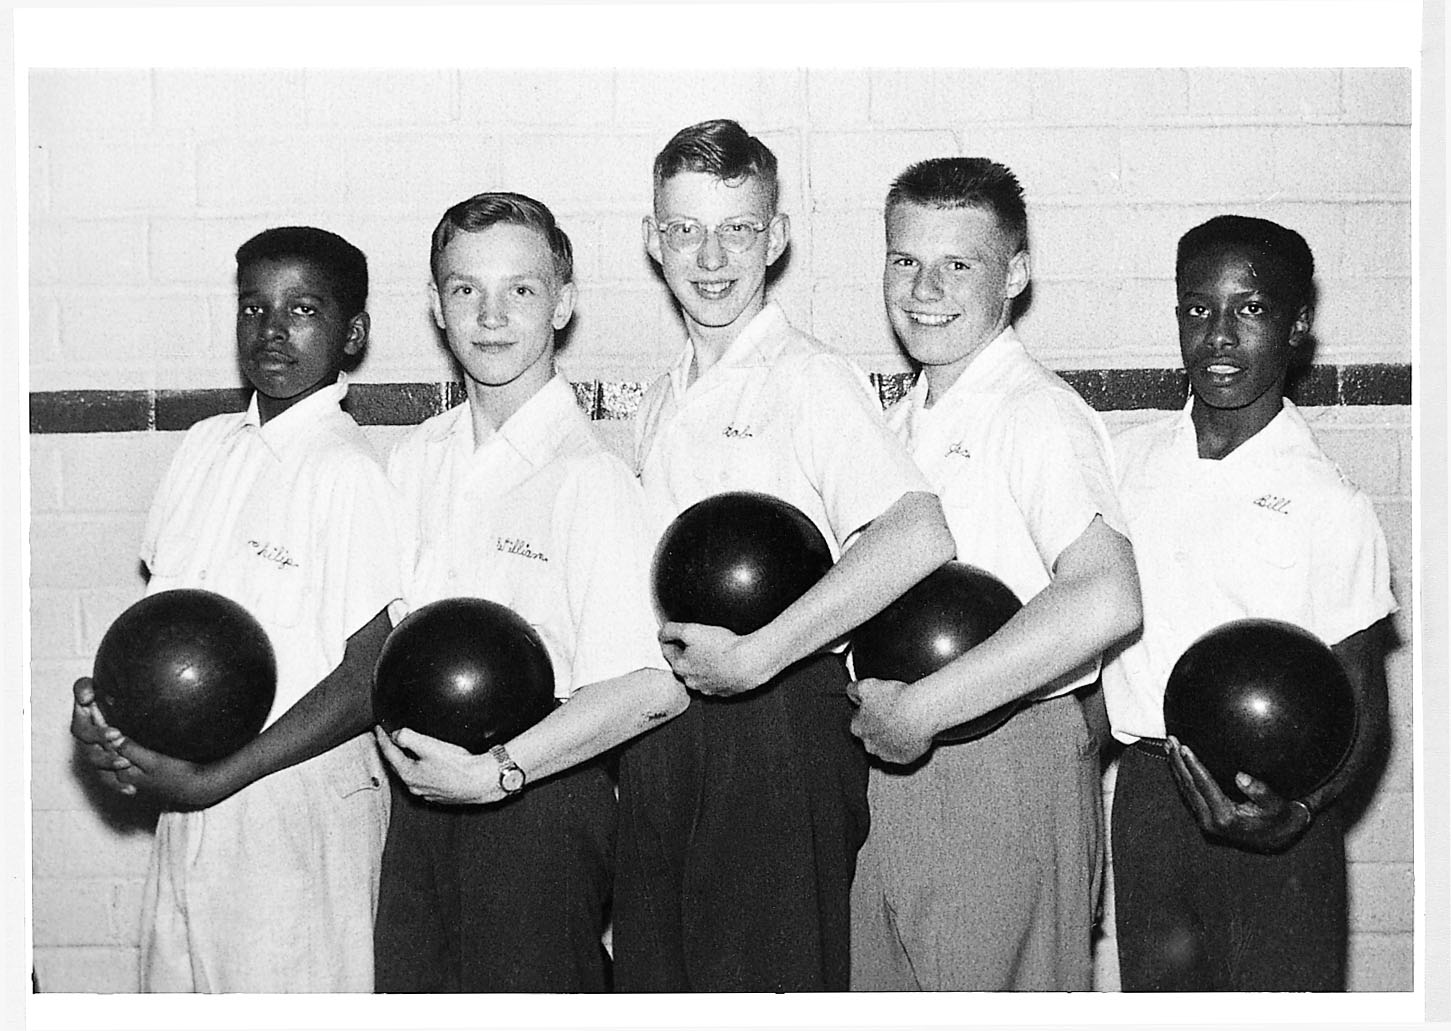 Robert Putnam (center, tallest on the team) bowled on his Port Clinton, Ohio, school team. He objects to schools that now require students to pay fees for school extracurricular activities including sports. Photo courtesy of Robert Putnam